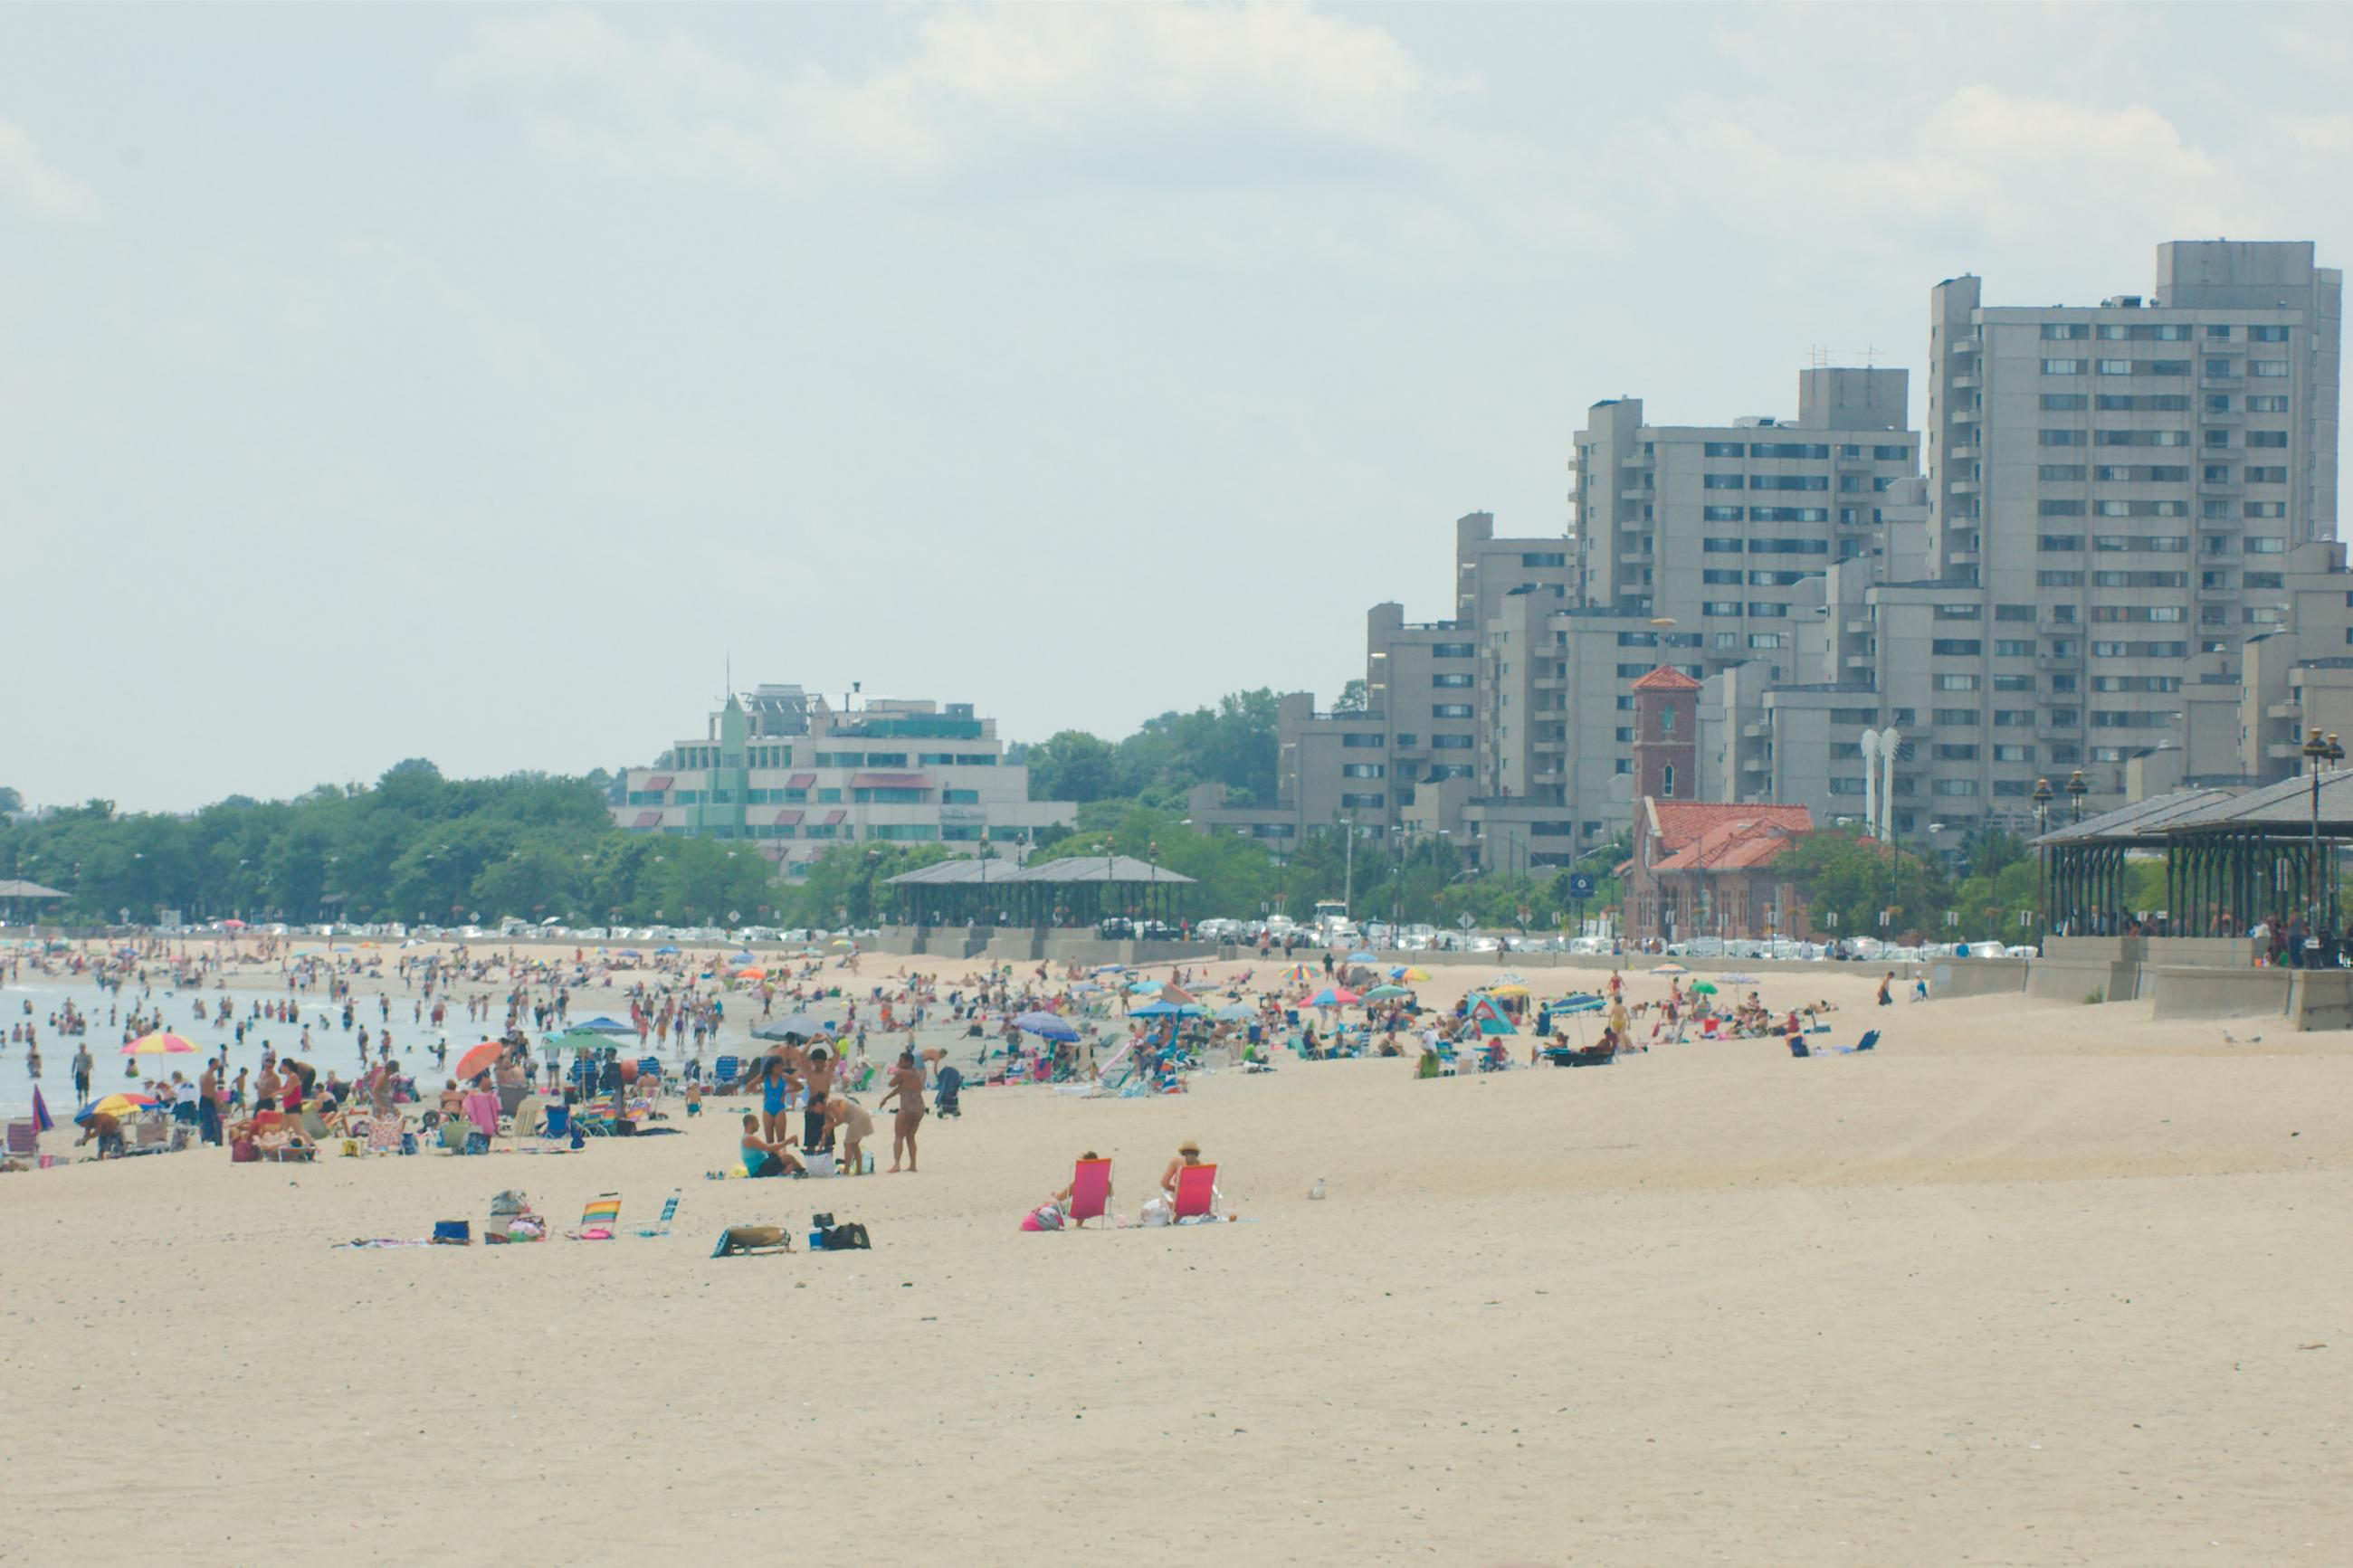 Revere Beach with many people. Photo by massmatt on Flickr (CC BY-SA 2.0).